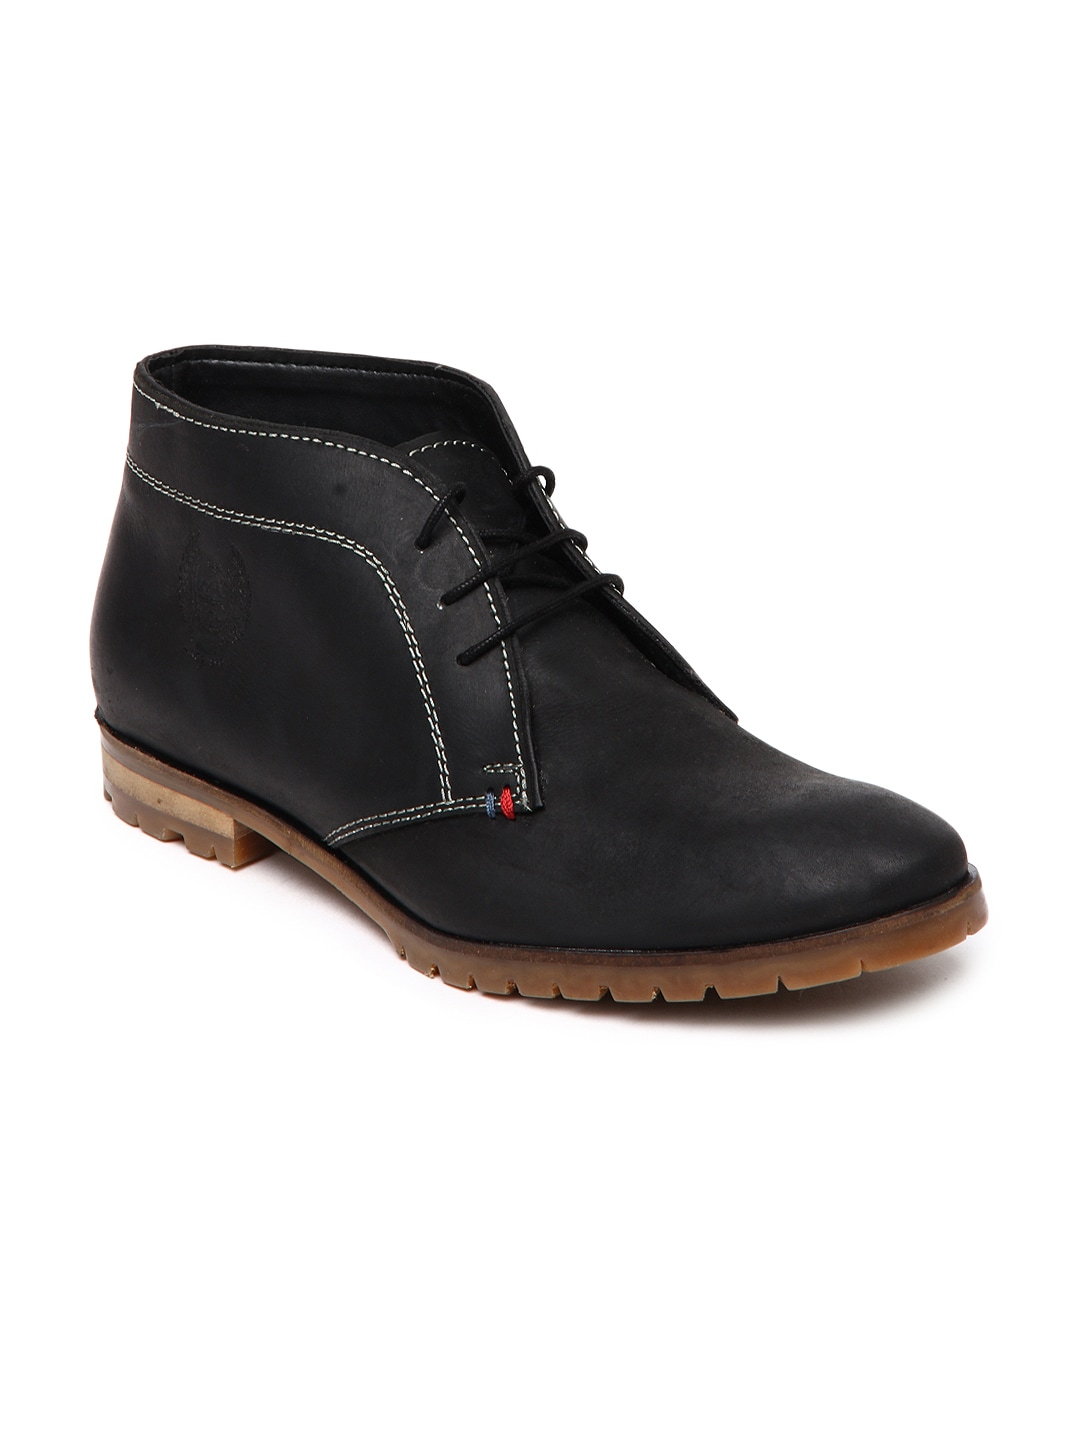 buy u s polo assn black leather casual shoes 632